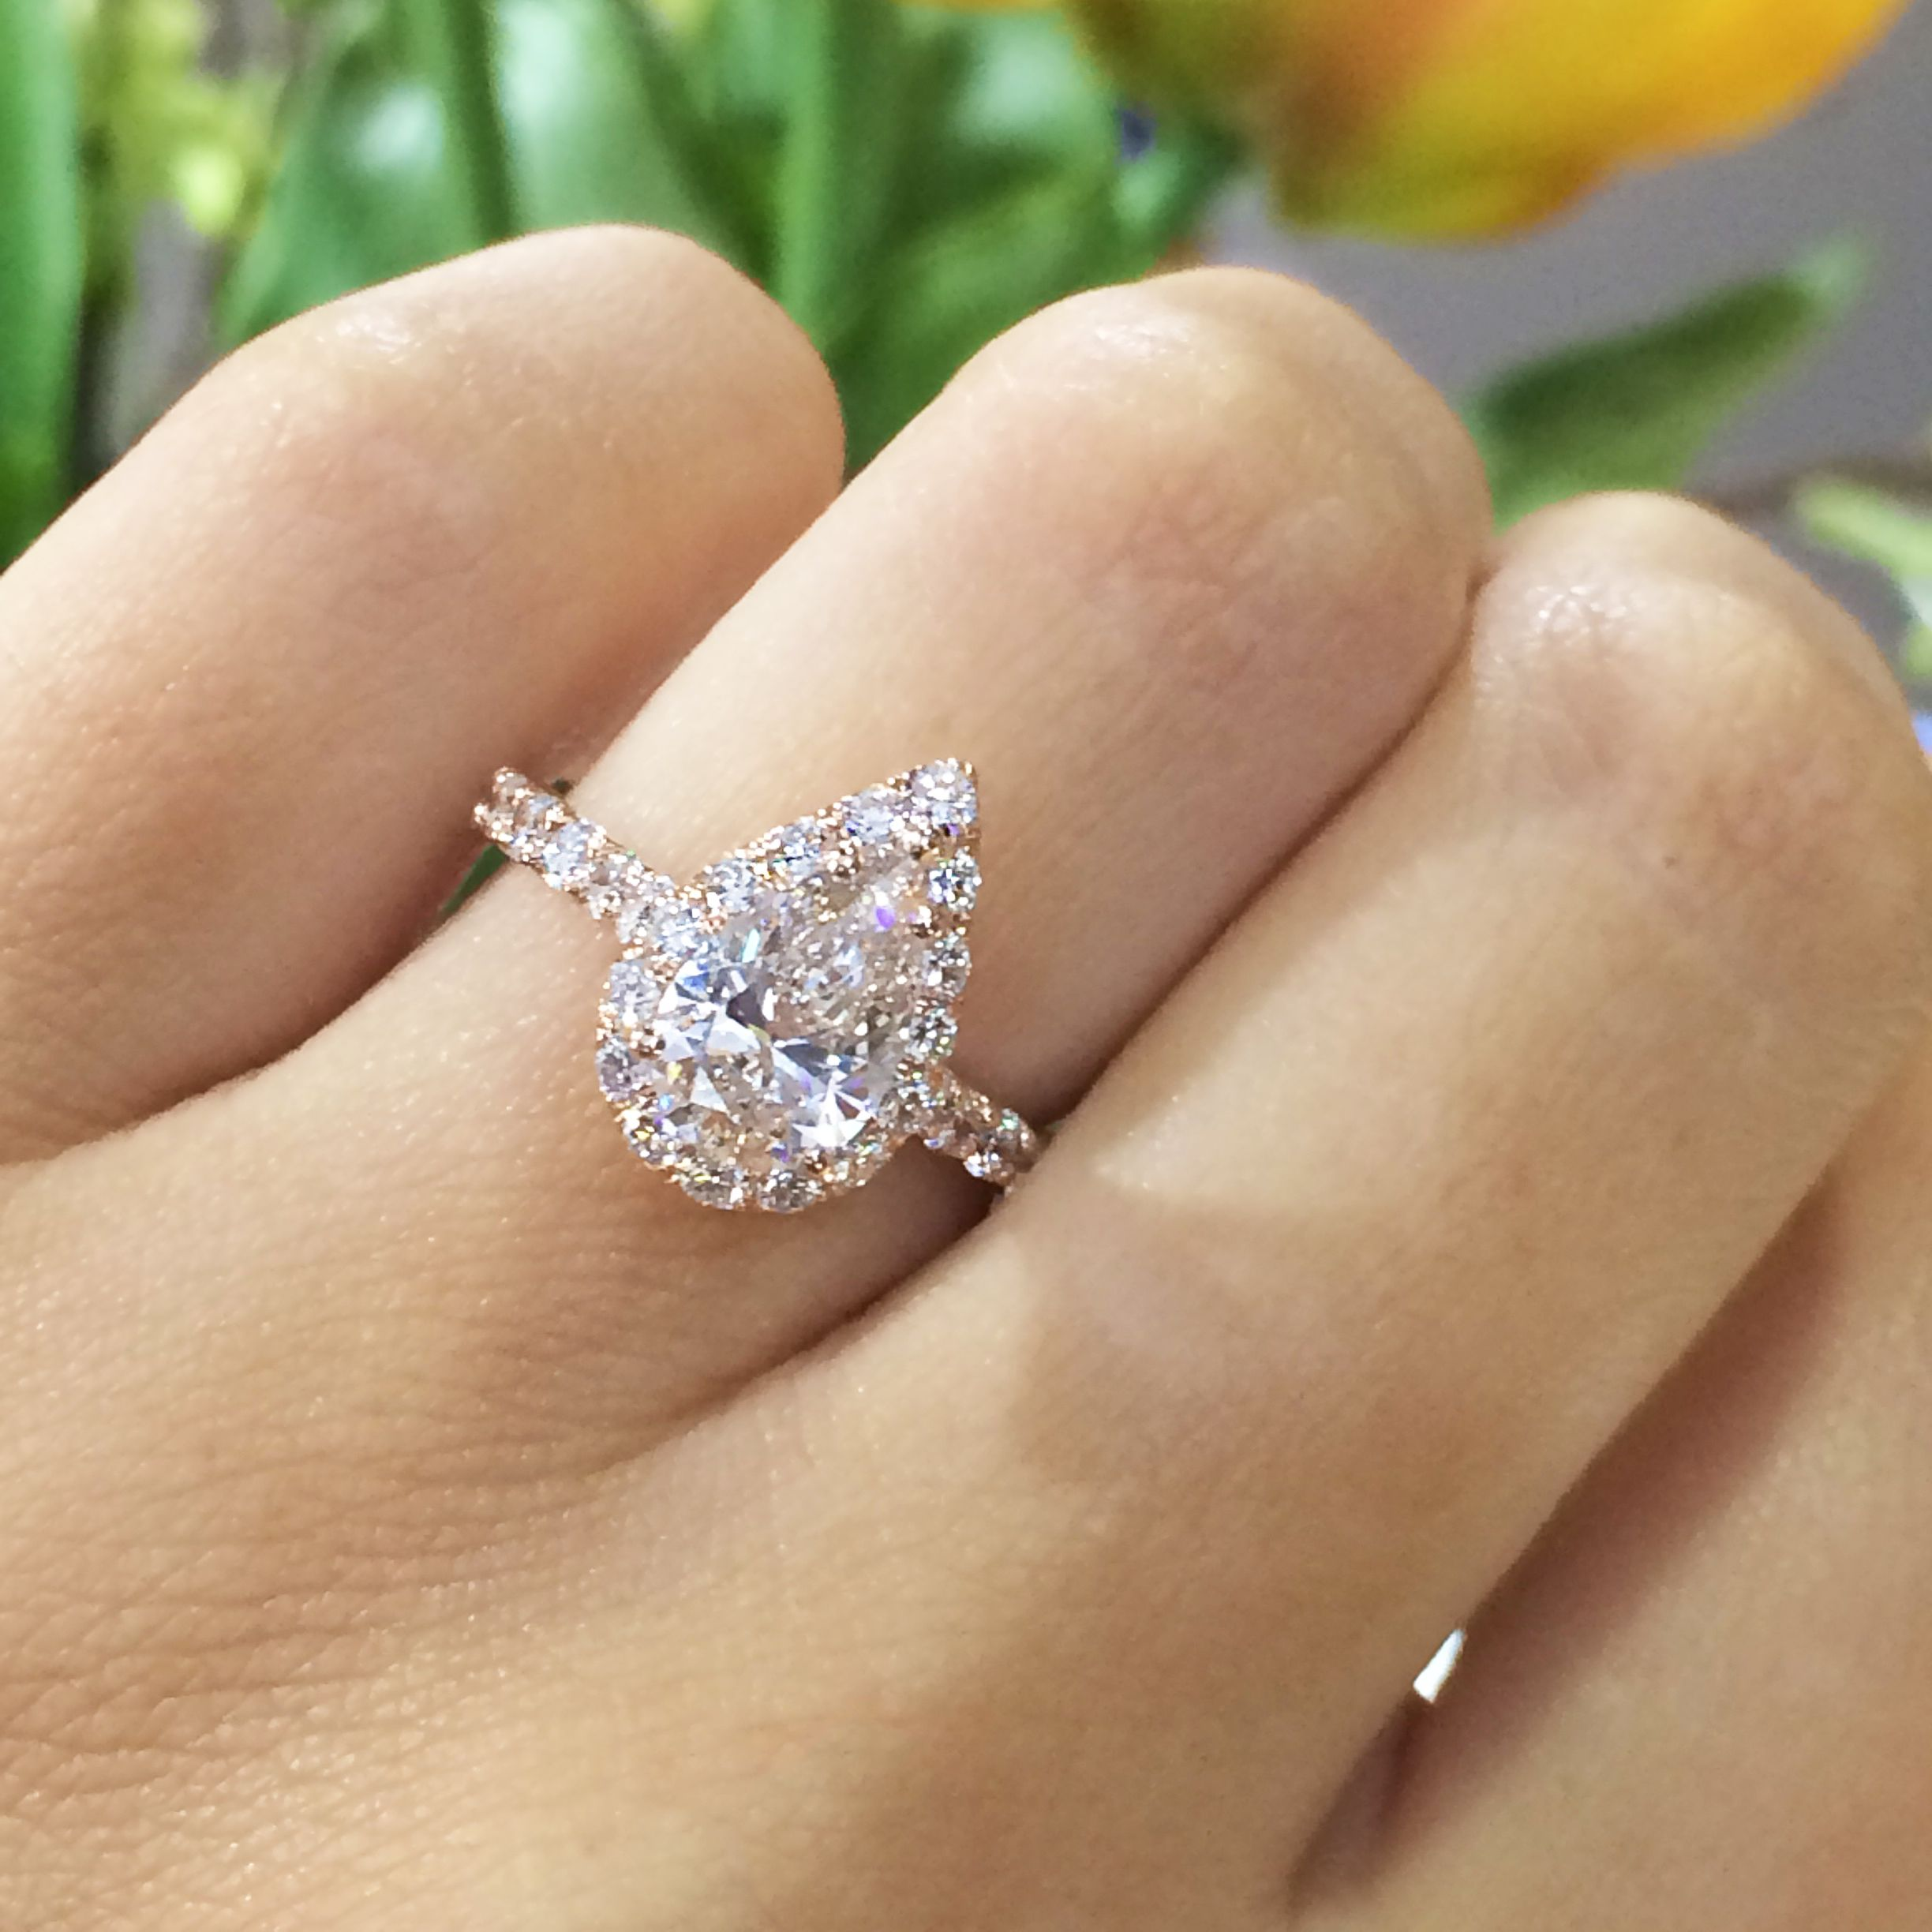 rings blue small engagement colorless bright s ctw the beauty hand collection blooming rose diamond engraved sapphire ring